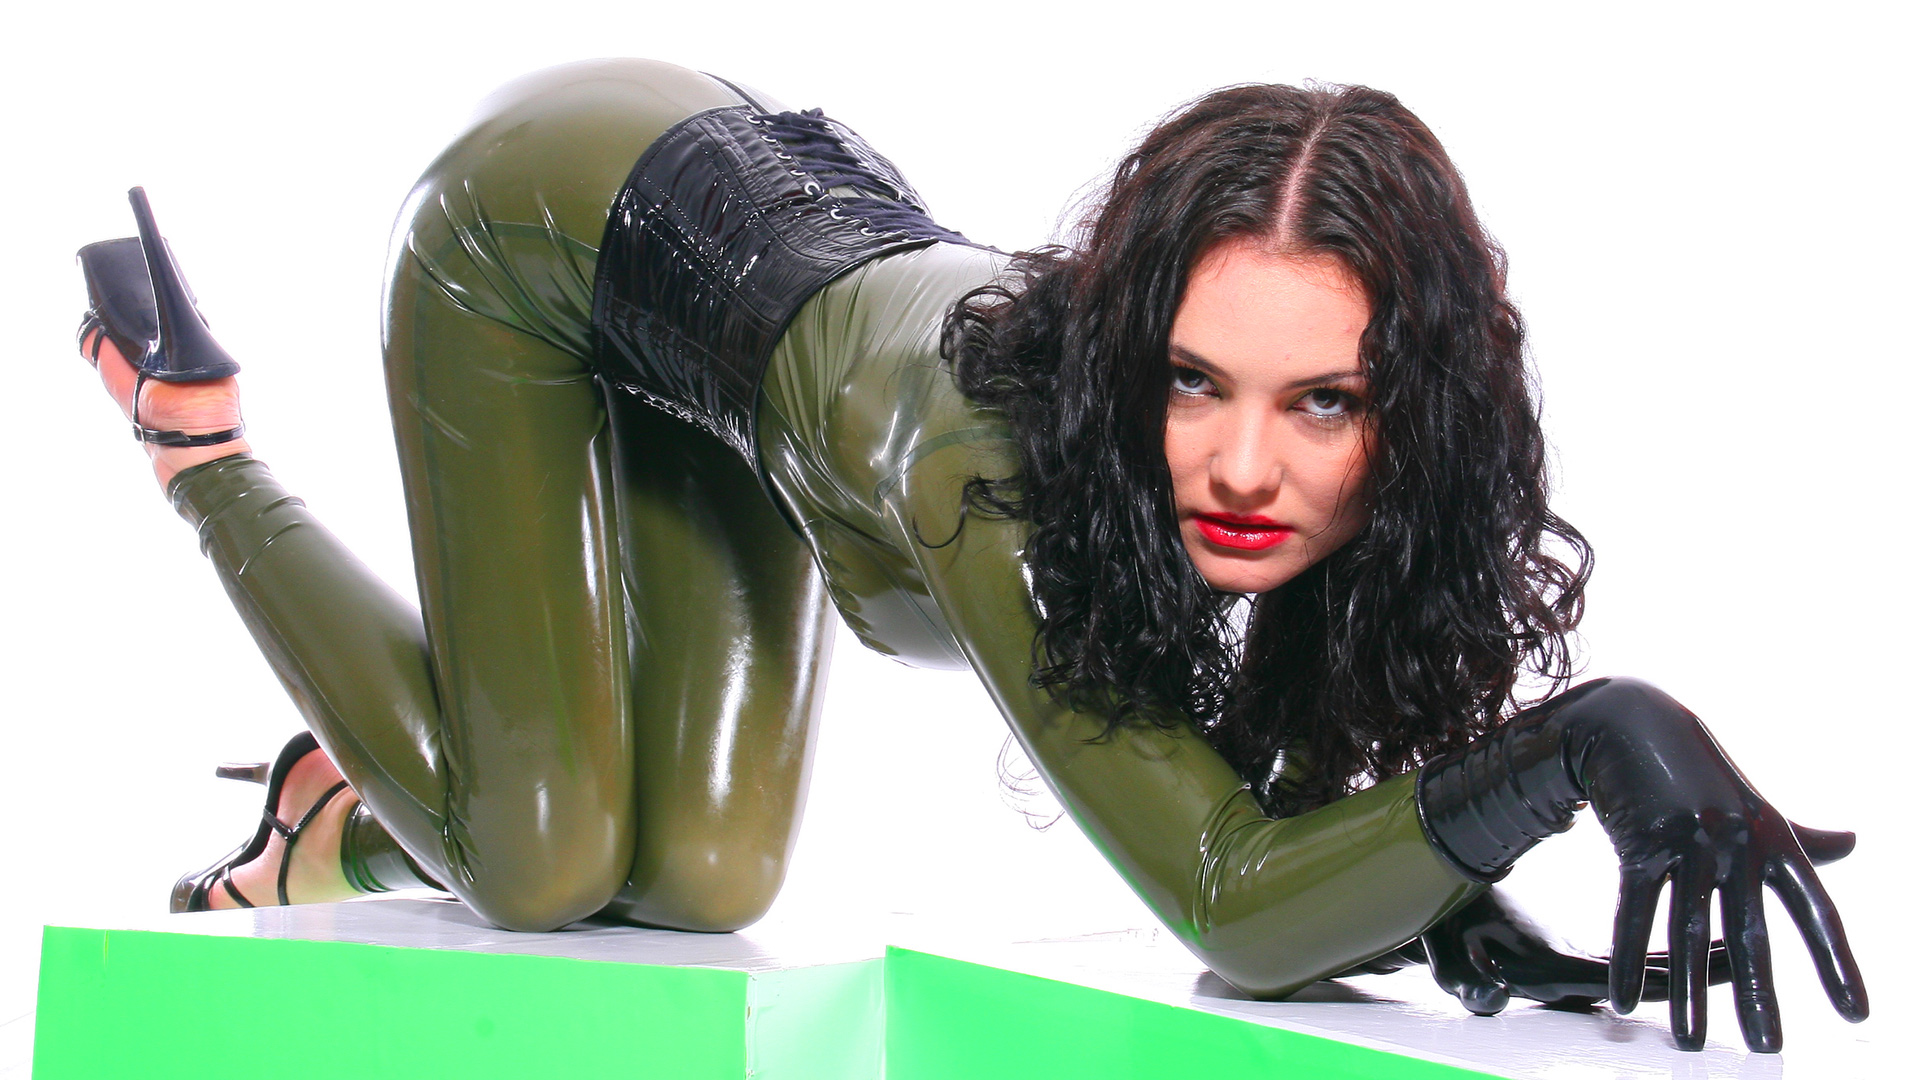 Full body latex nude models opinion